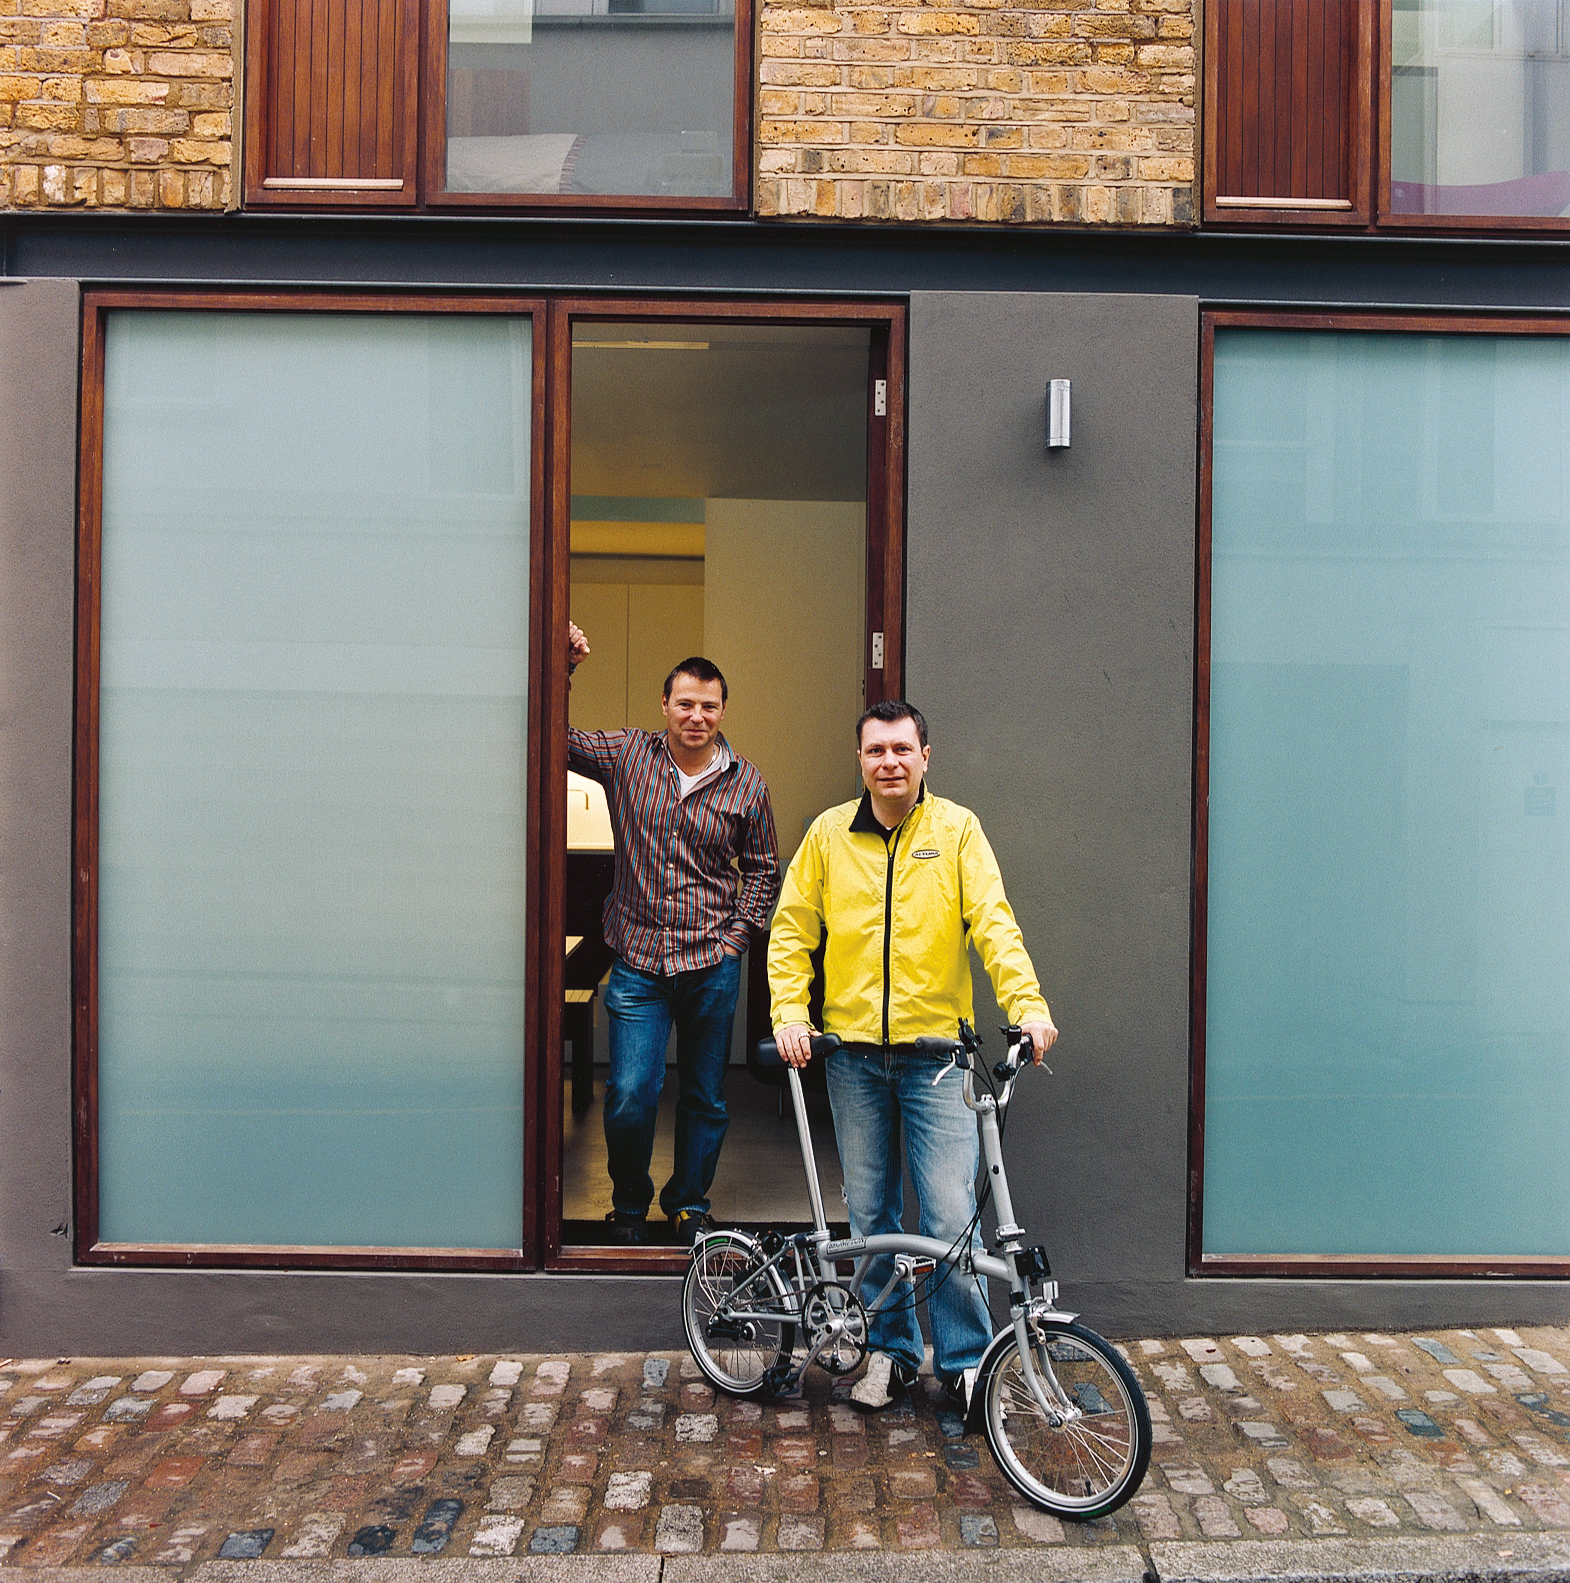 London facade bike